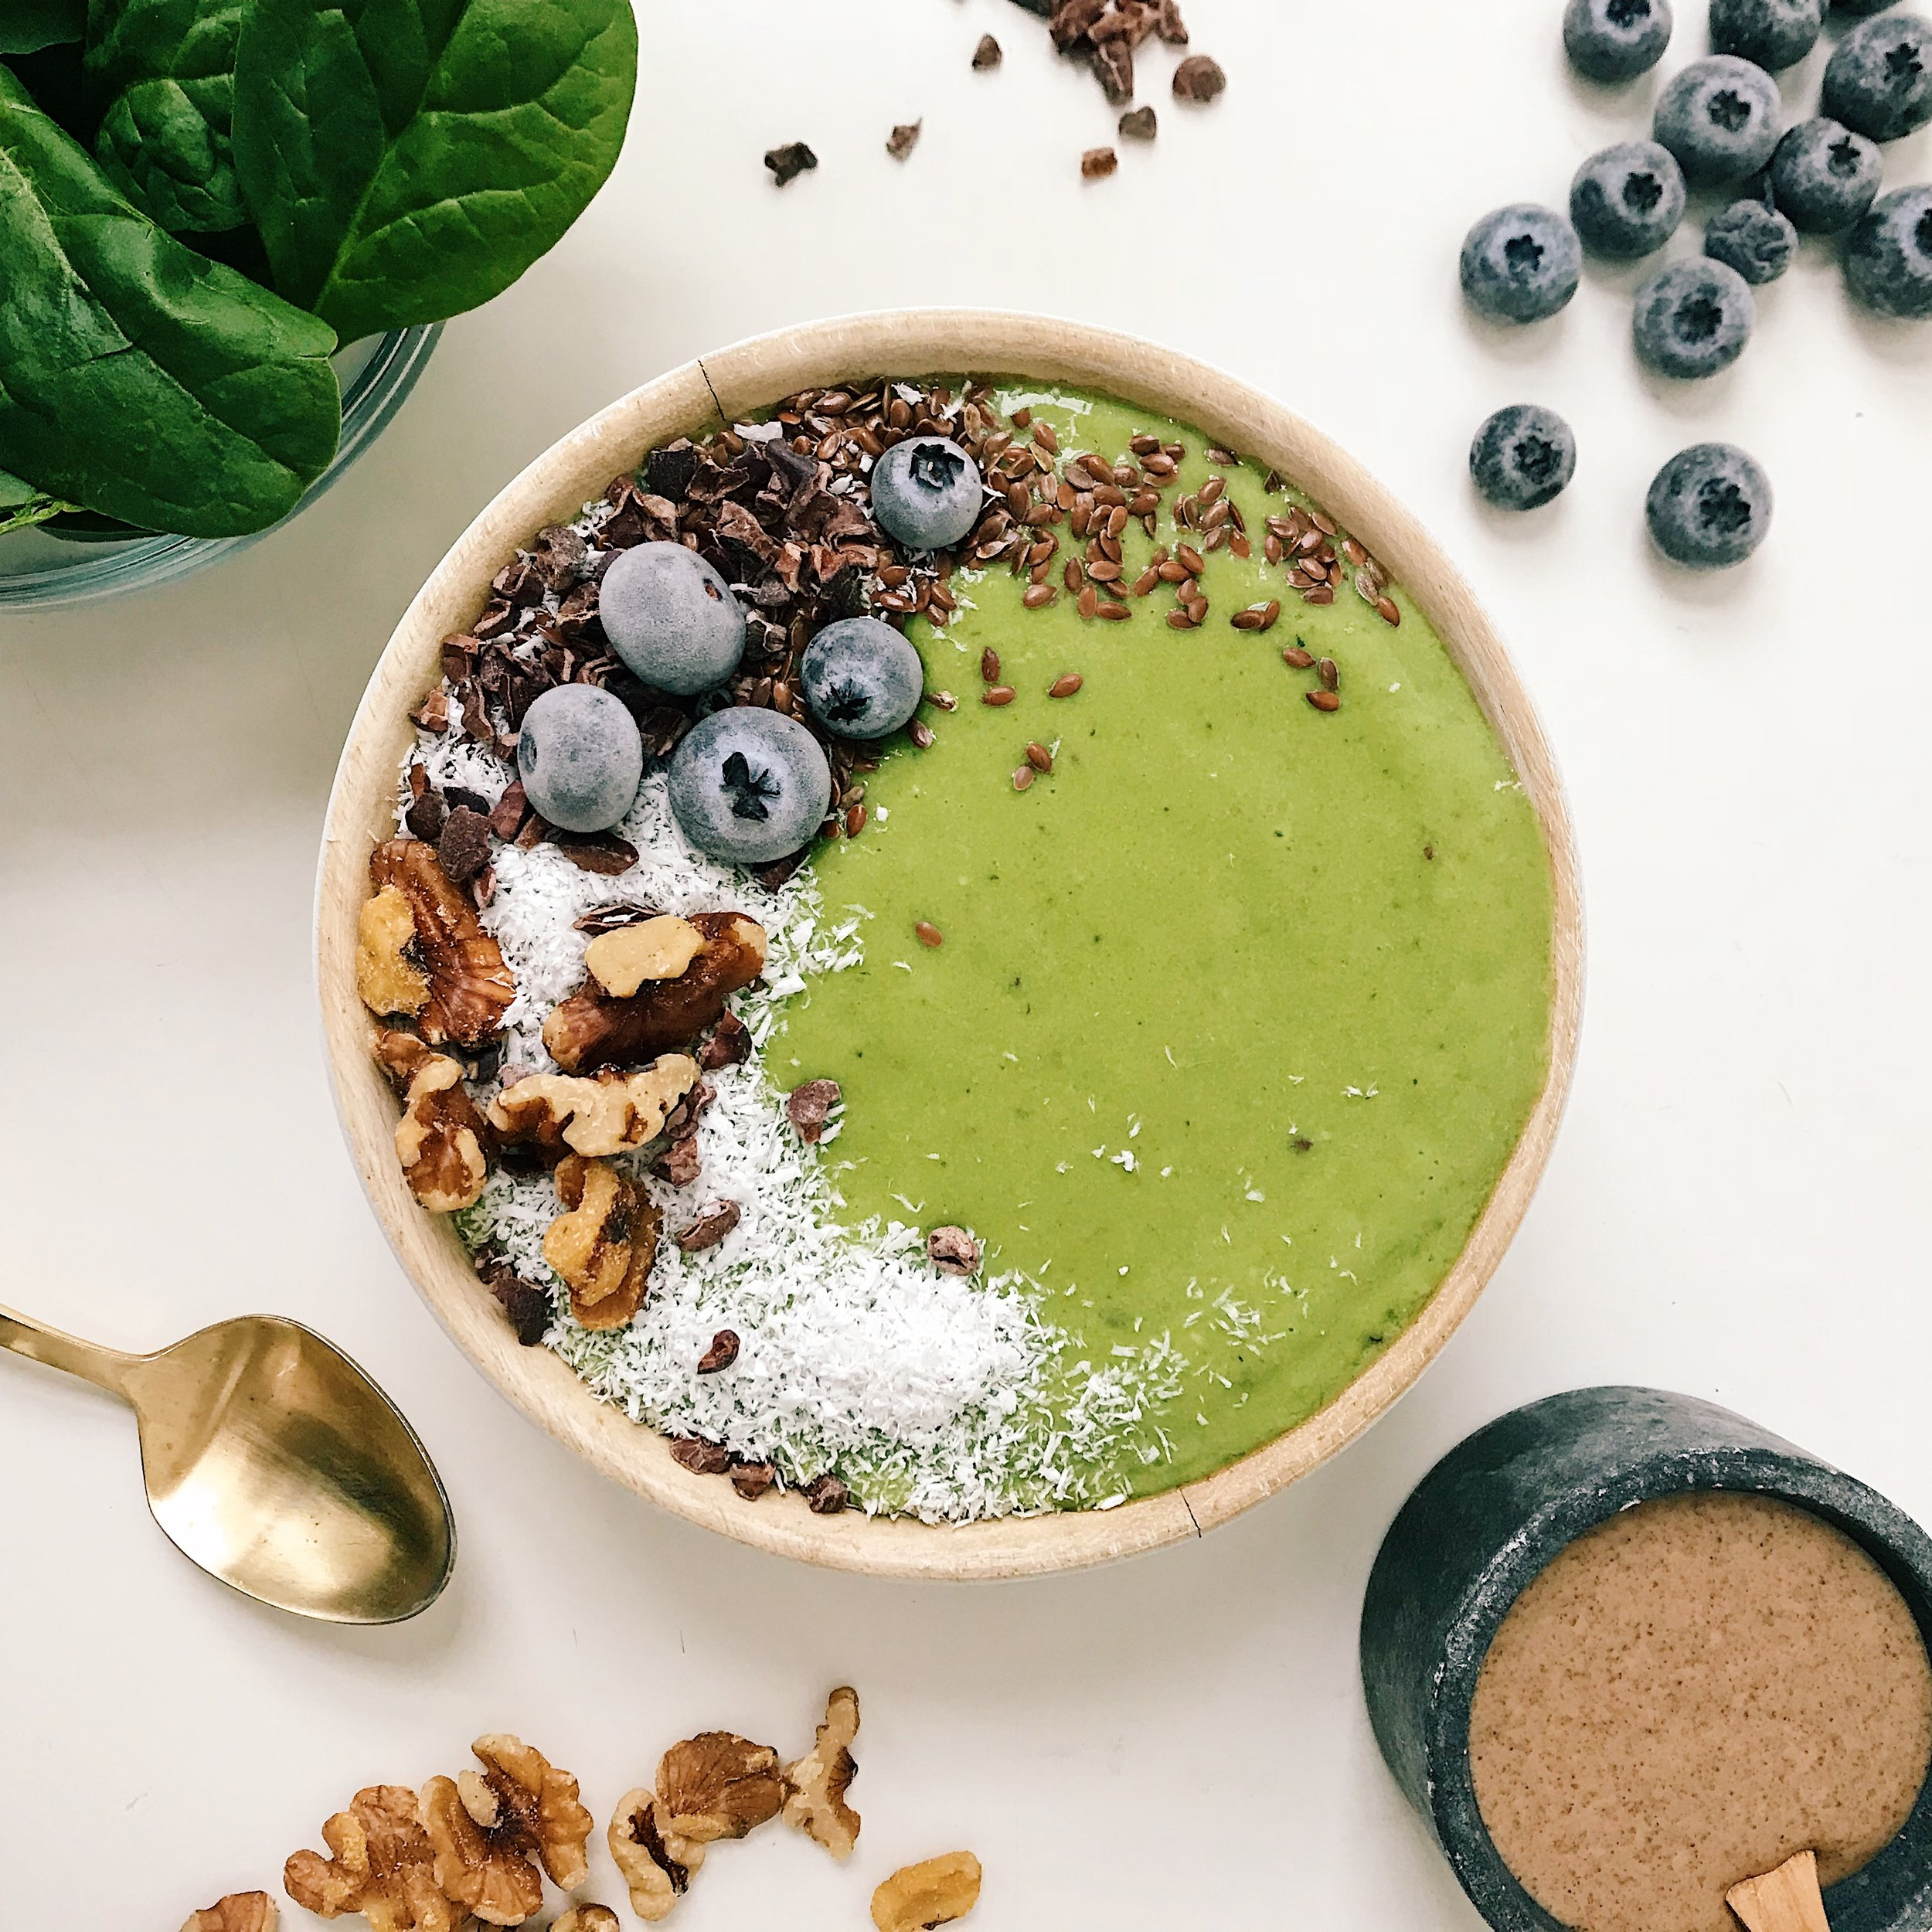 Green Smoothie with Berries and Walnuts.jpg